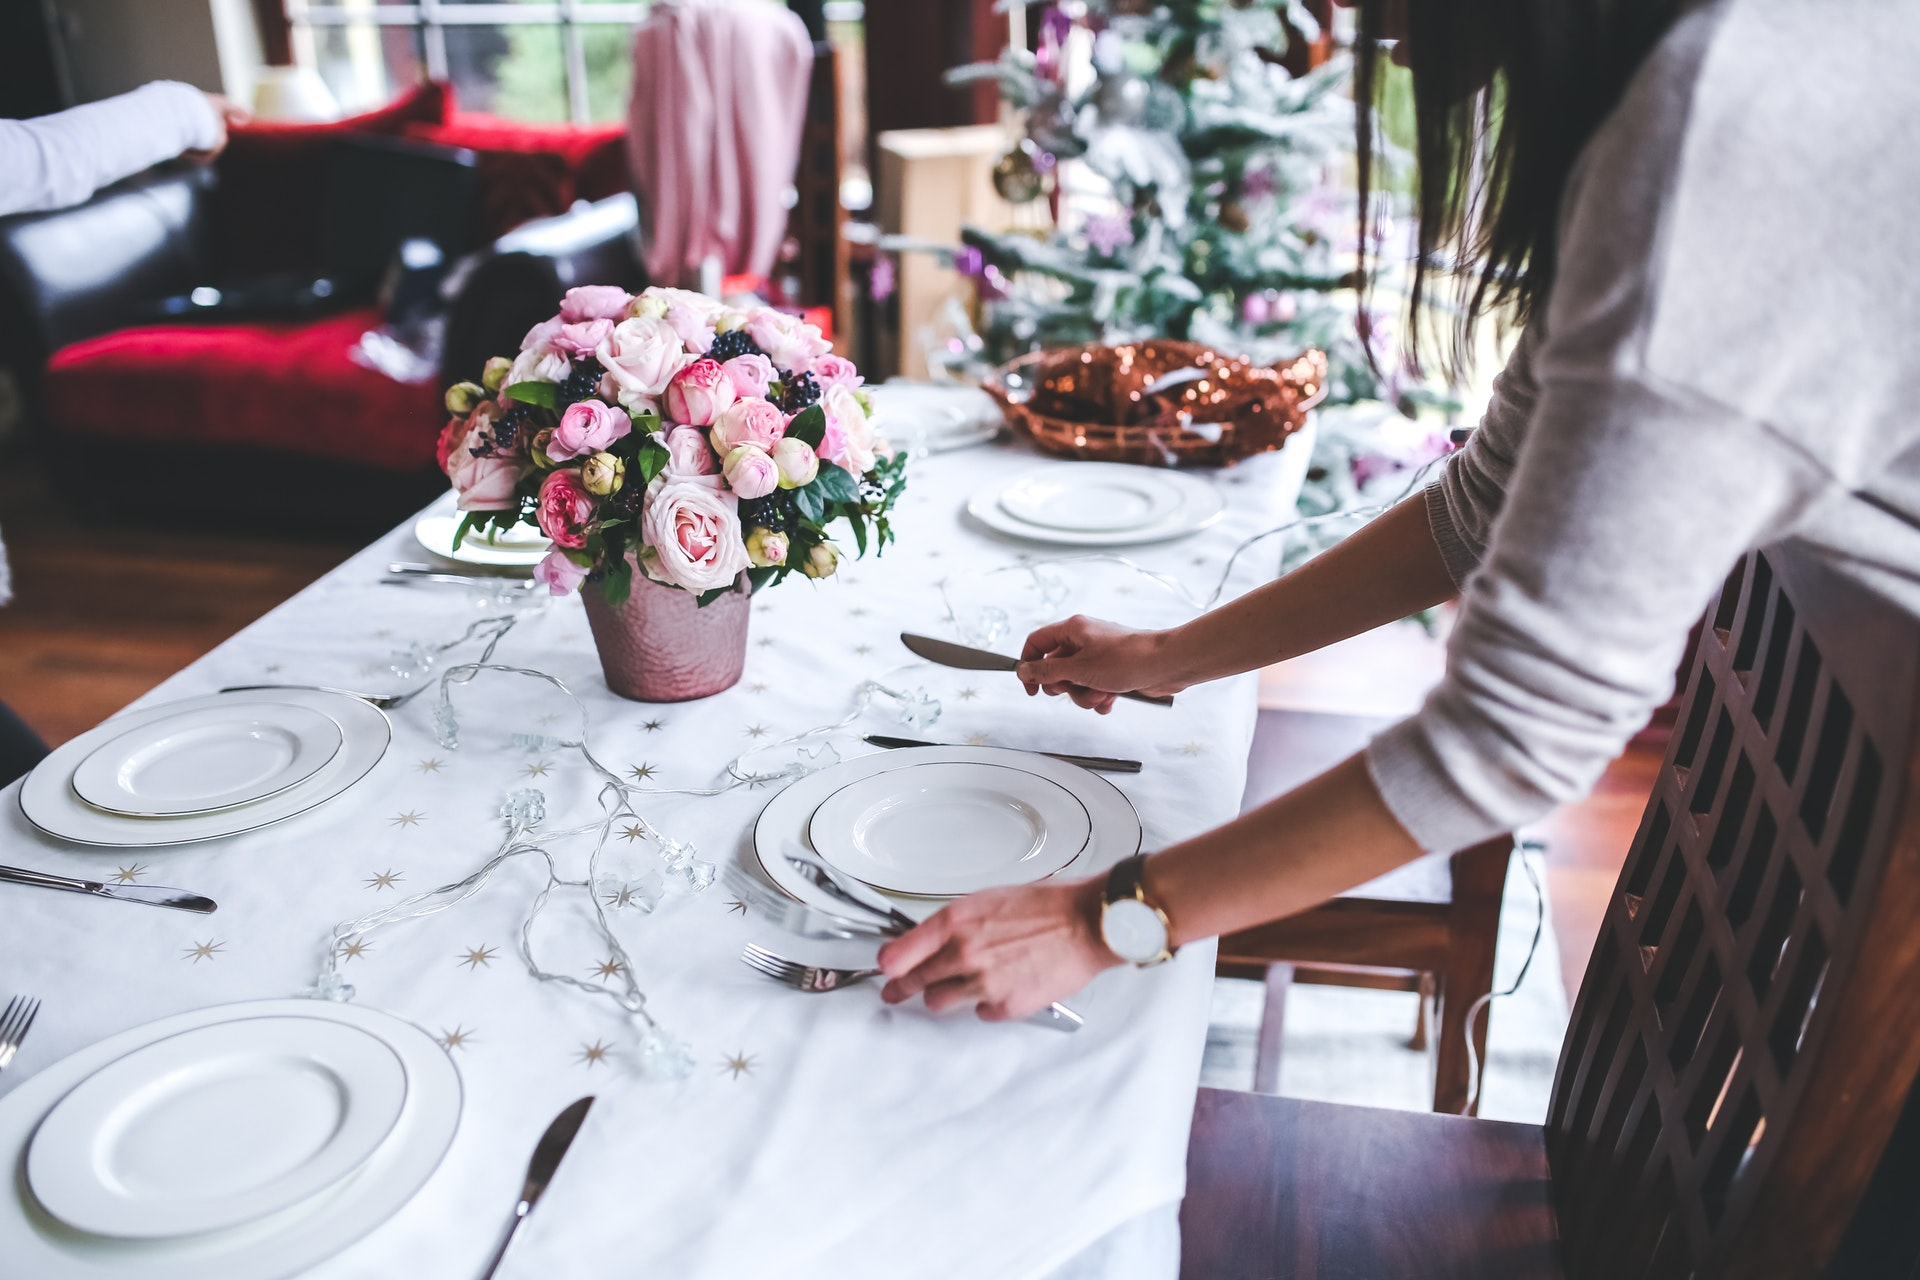 table with dishes being set by woman